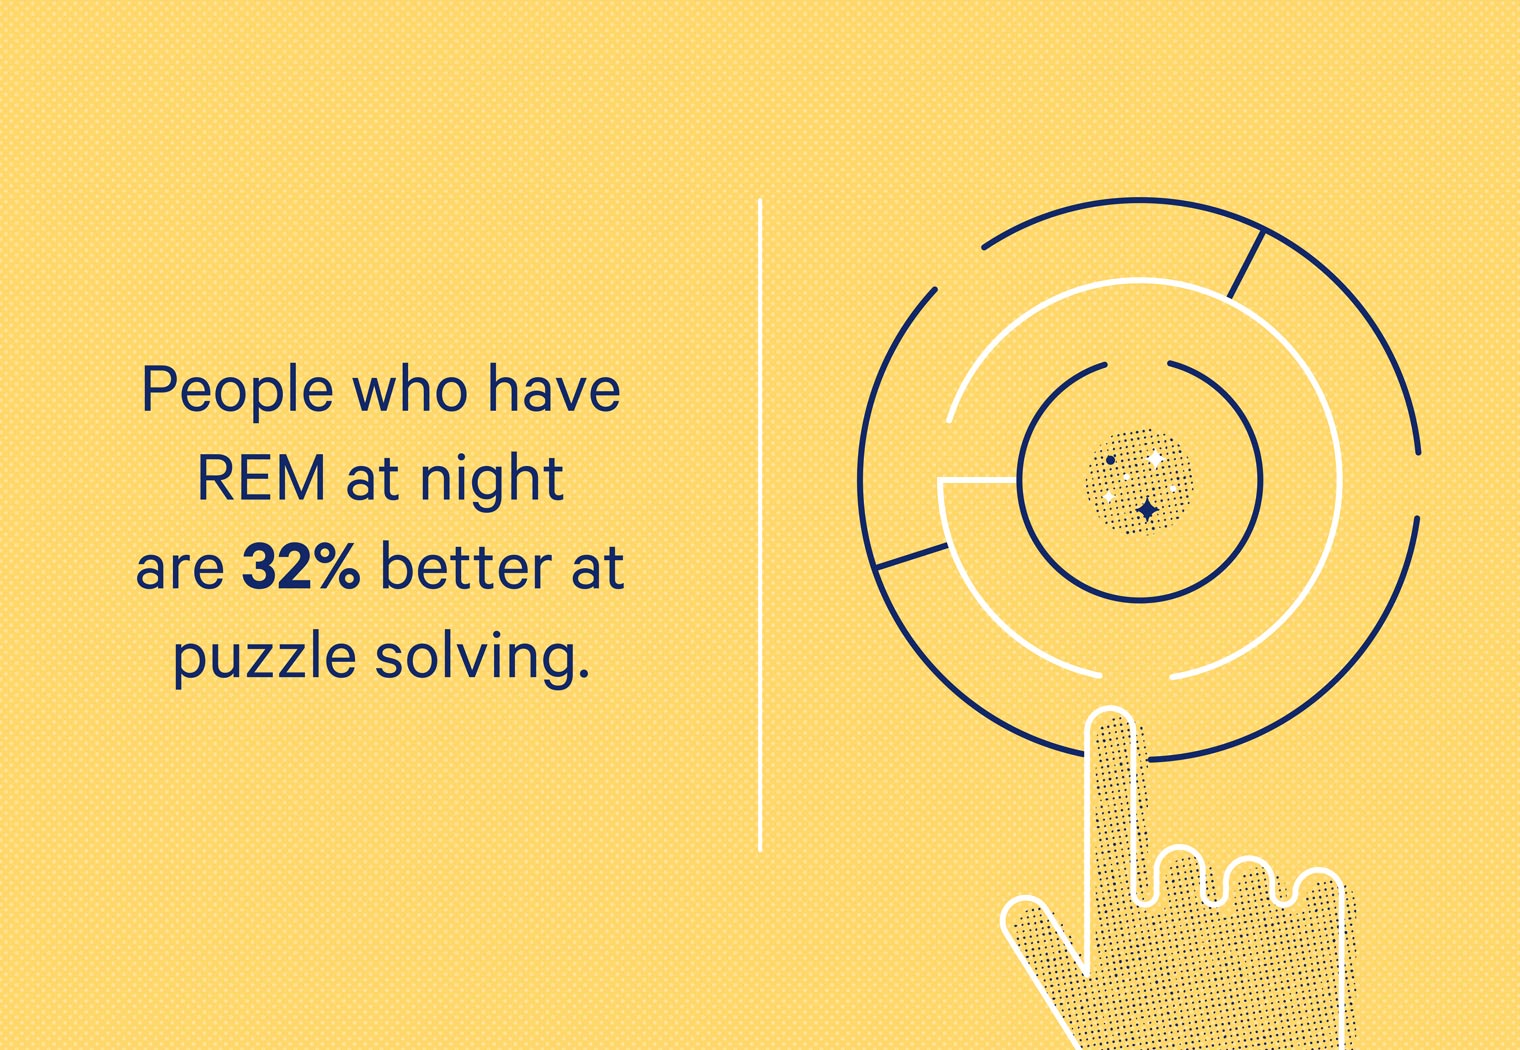 People who go through deep REM at night perform 32% better at solving puzzles.